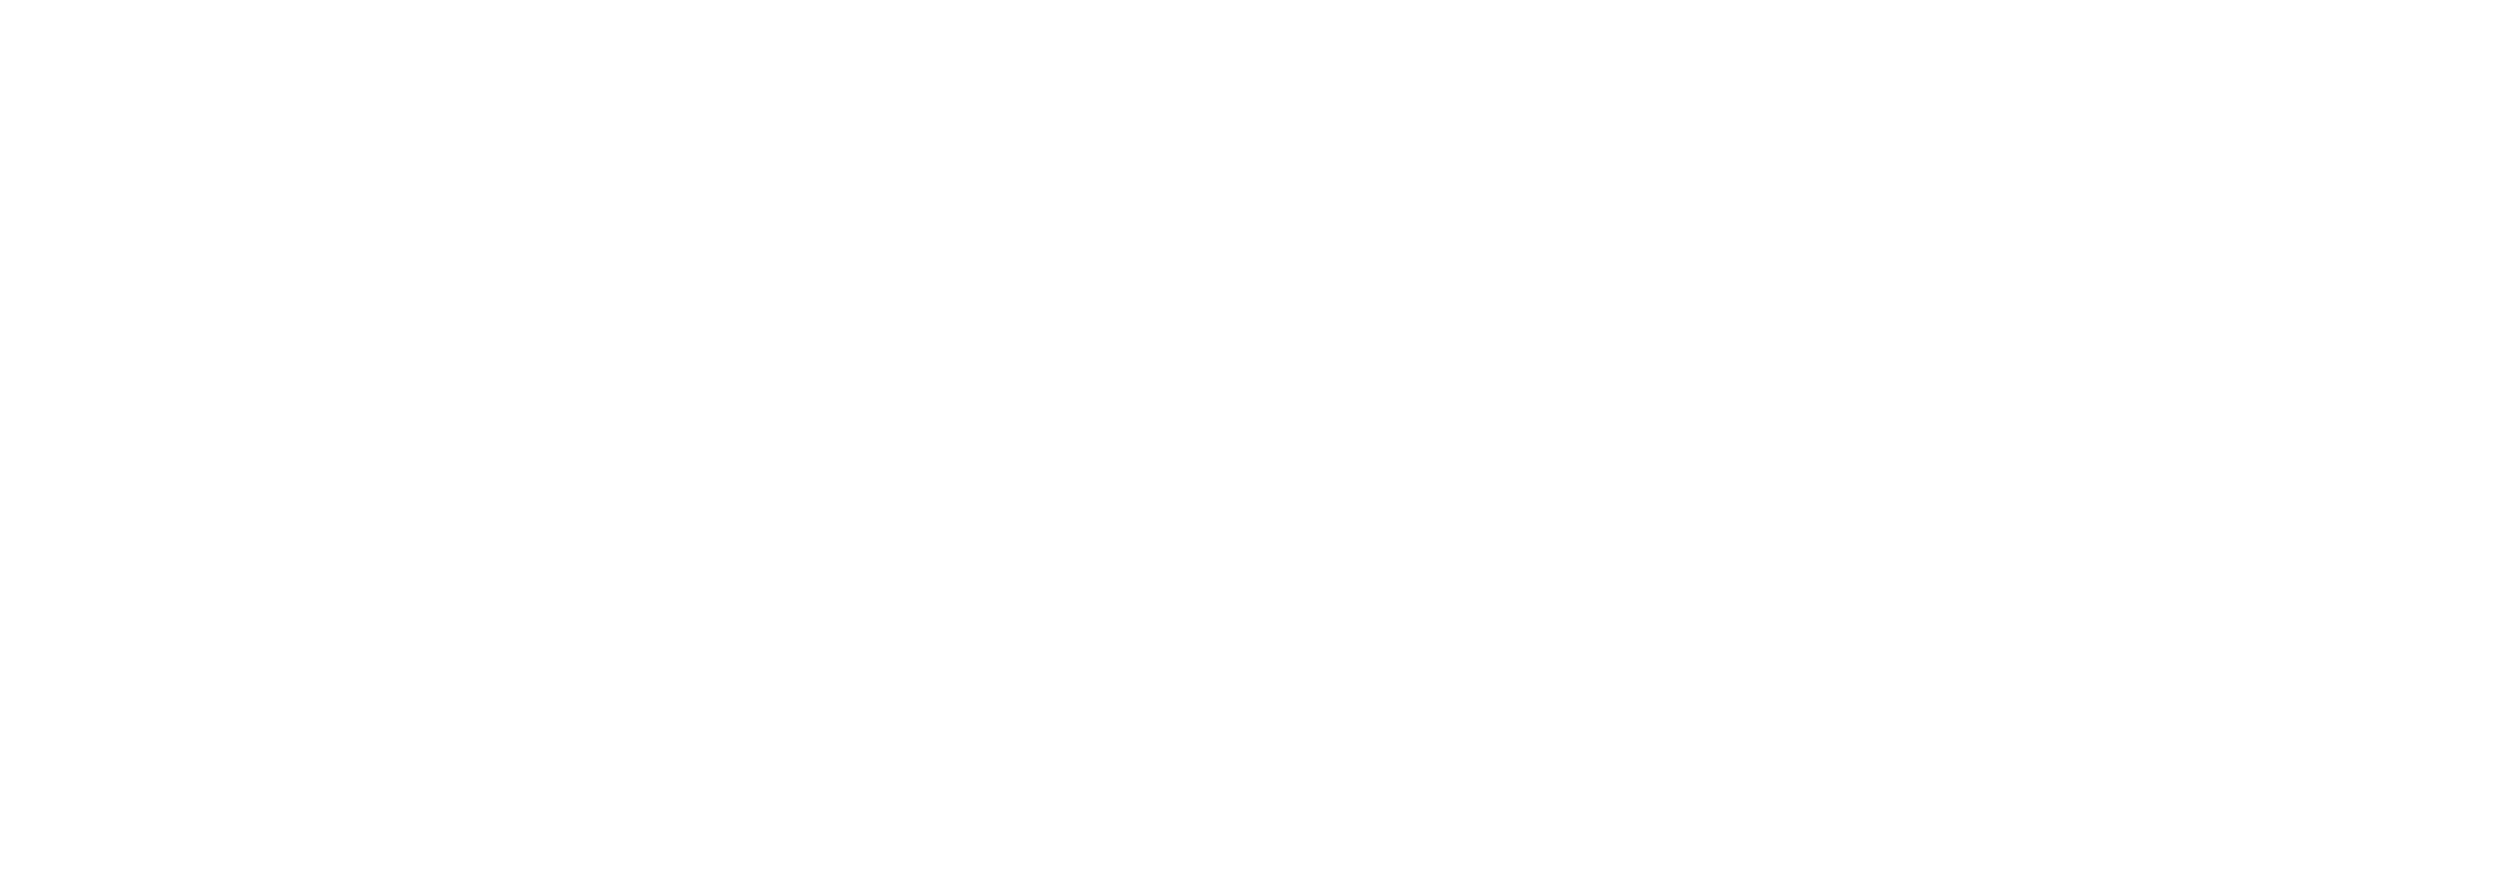 Trek_logo_origin_primary_white.png